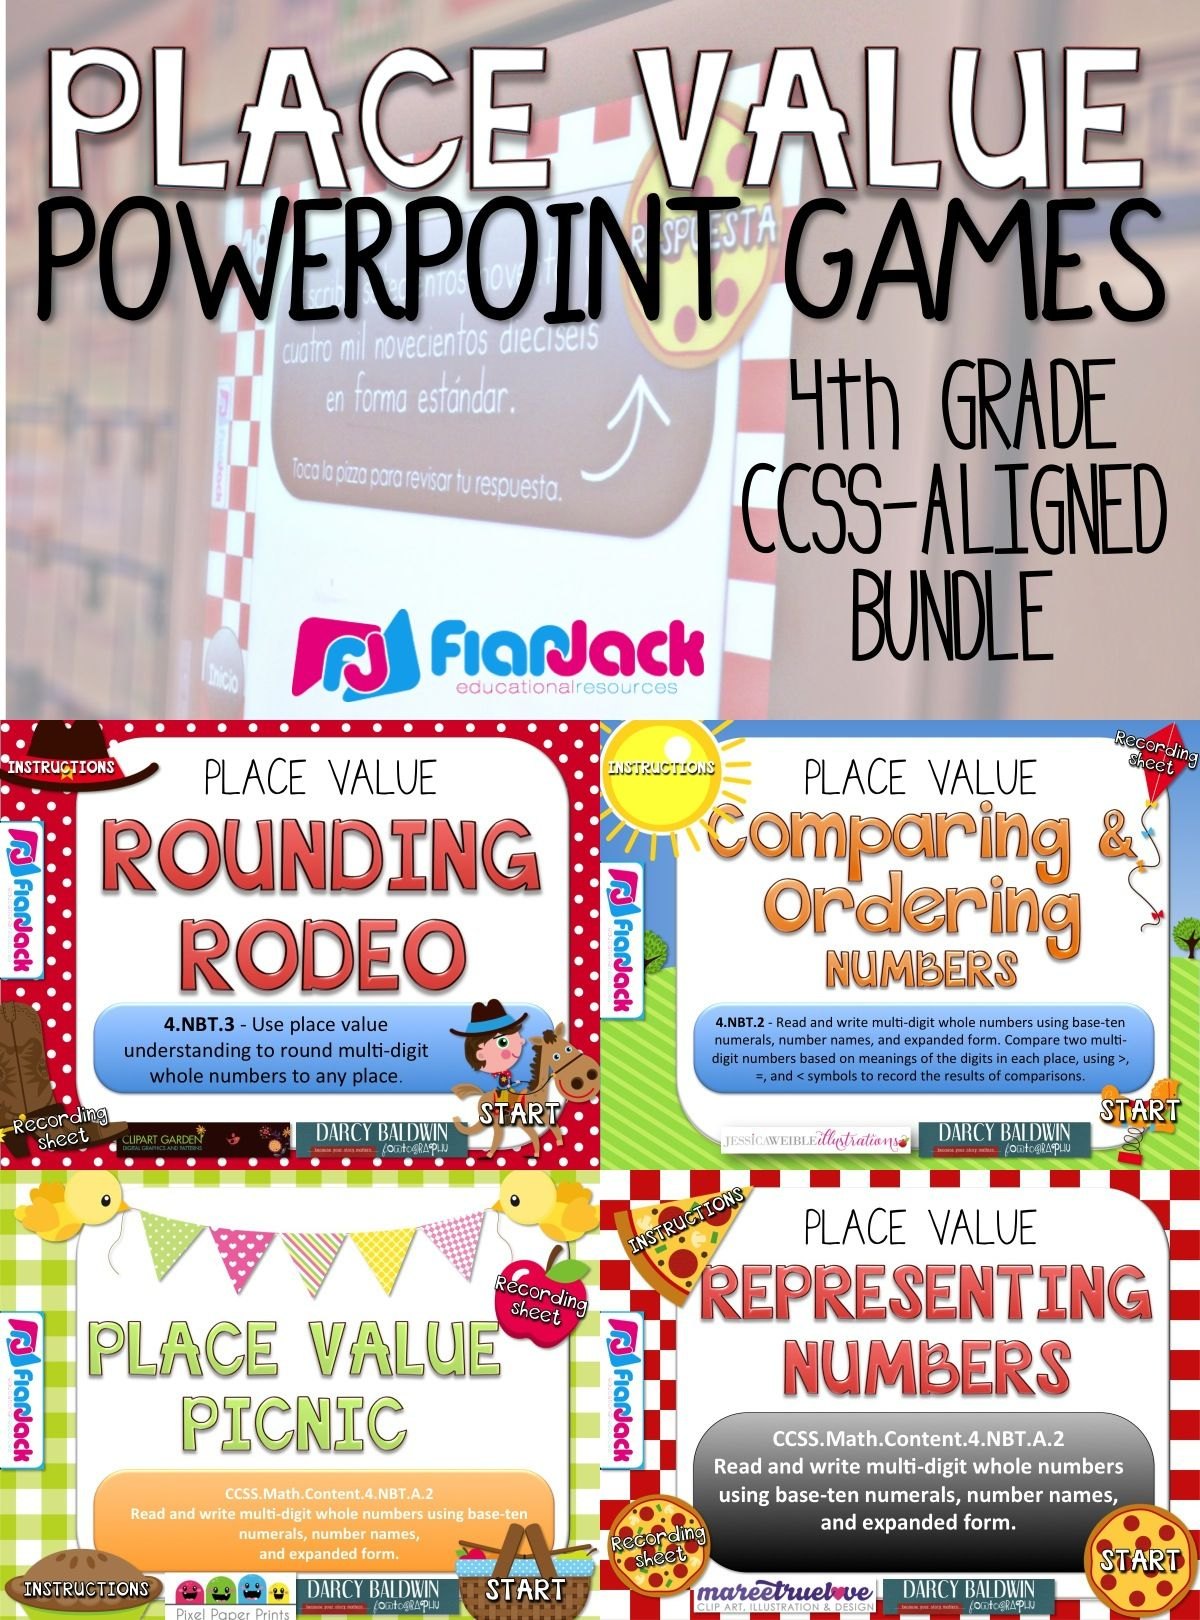 small resolution of 4th grade place value powerpoint games bundle this bundle contains 4 ccss aligned powerpoint games that will motivate your students to practice place